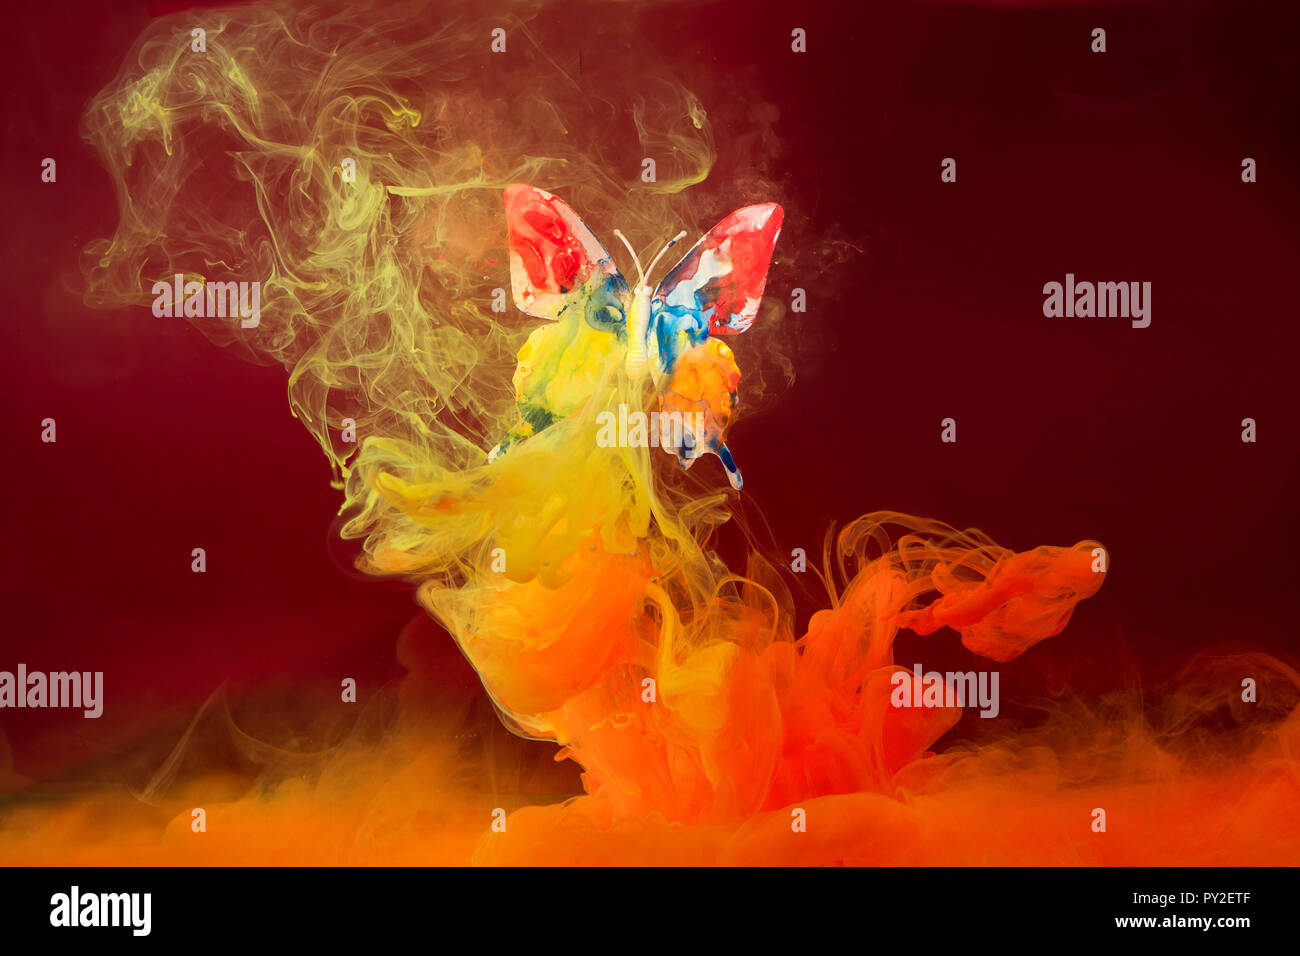 Conceptual Butterfly Stock Photos & Conceptual Butterfly